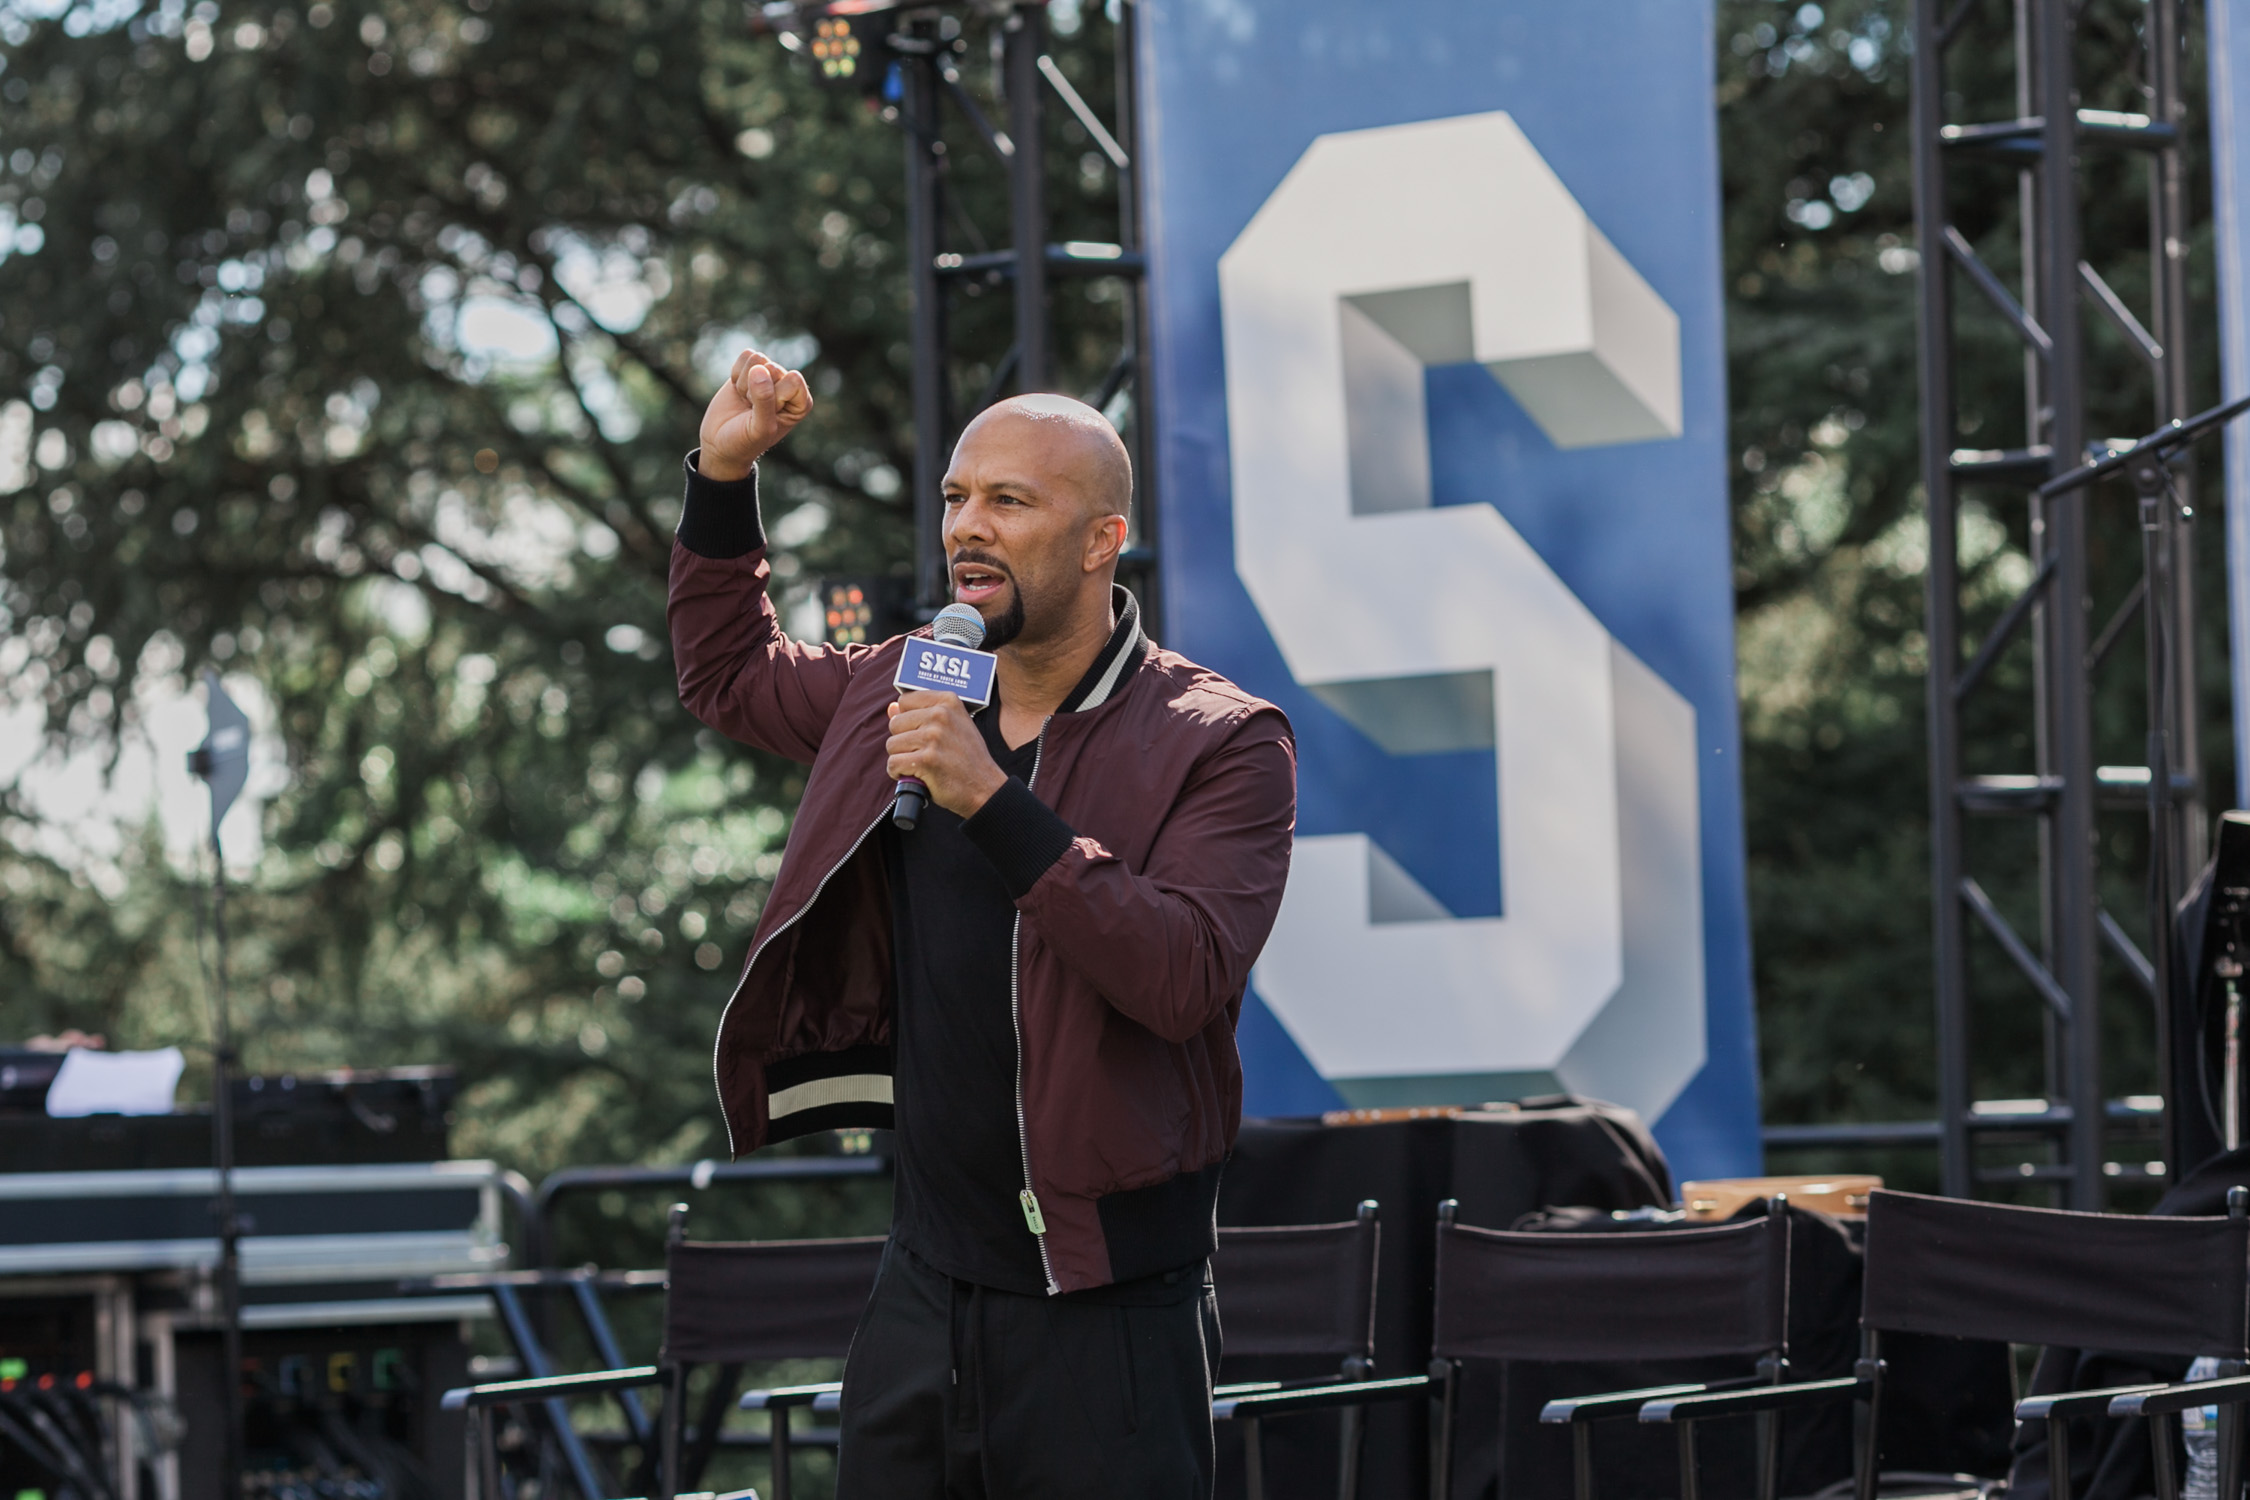 image of Common at SXSW festival during Obama Administration on South Lawn of the White House